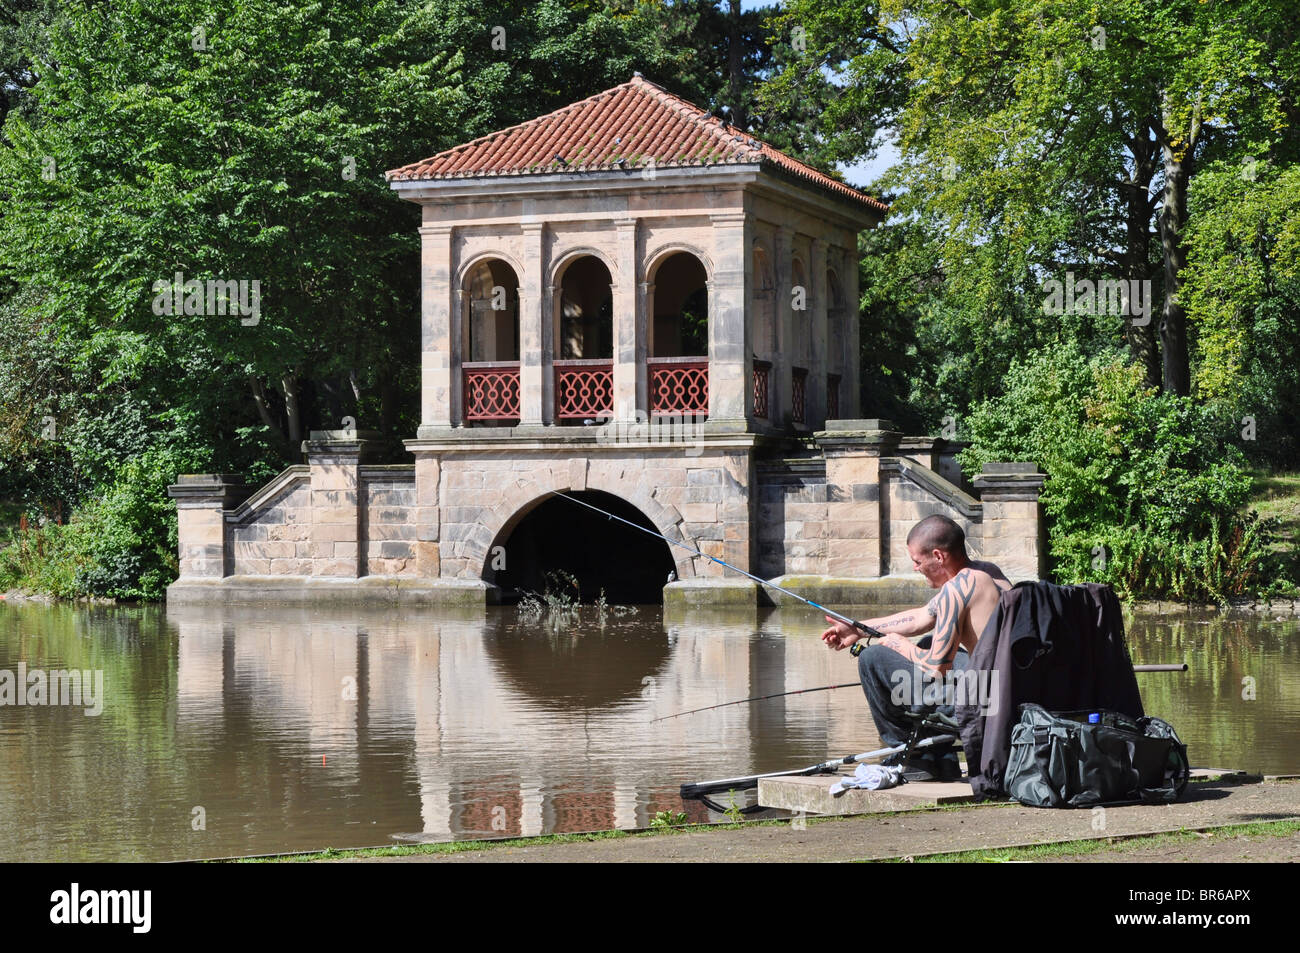 Fishing close to The Boathouse in Birkenhead Park - Stock Image